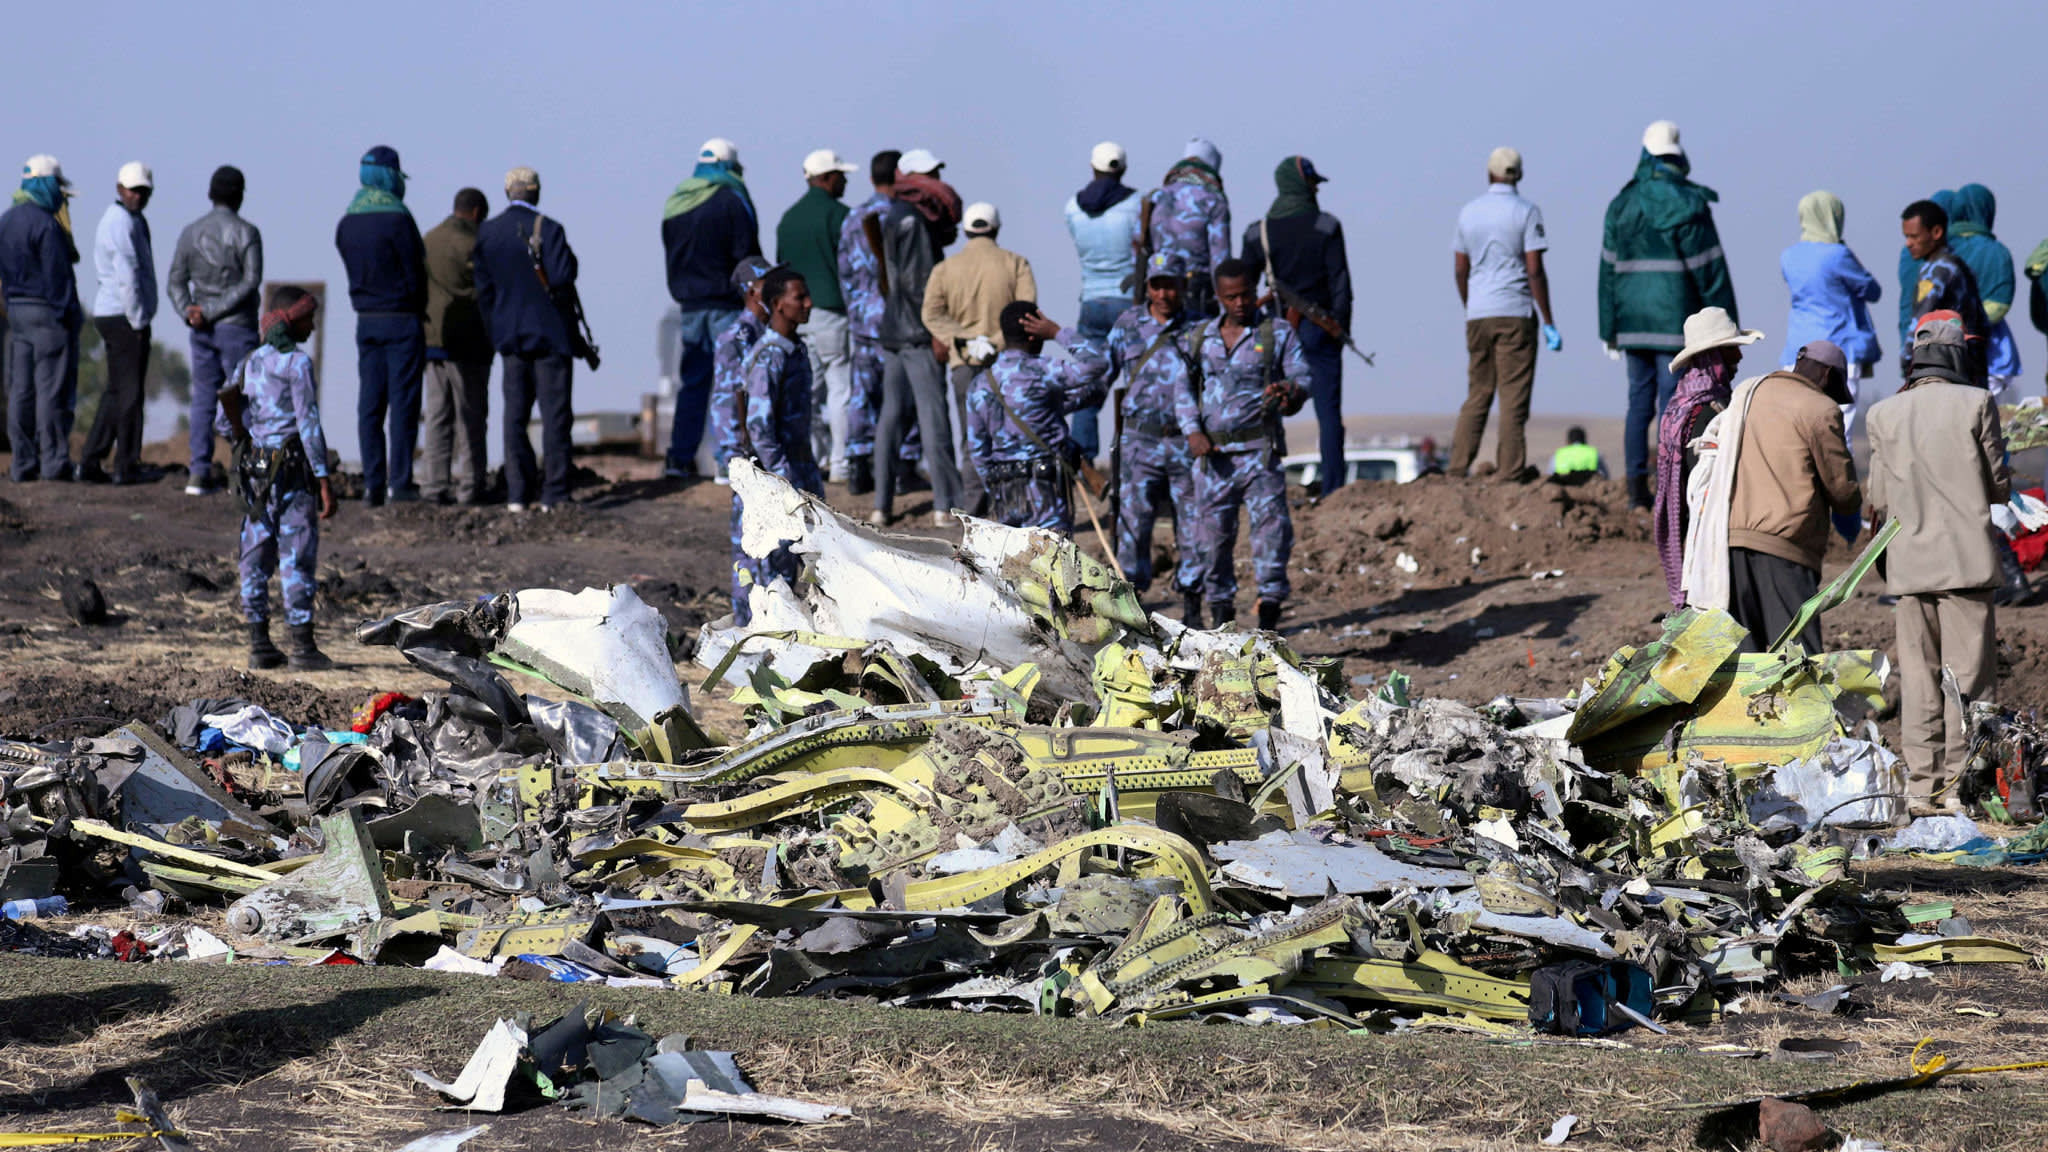 Boeing crash drives wedge between EU and US aviation authorities | Financial Times